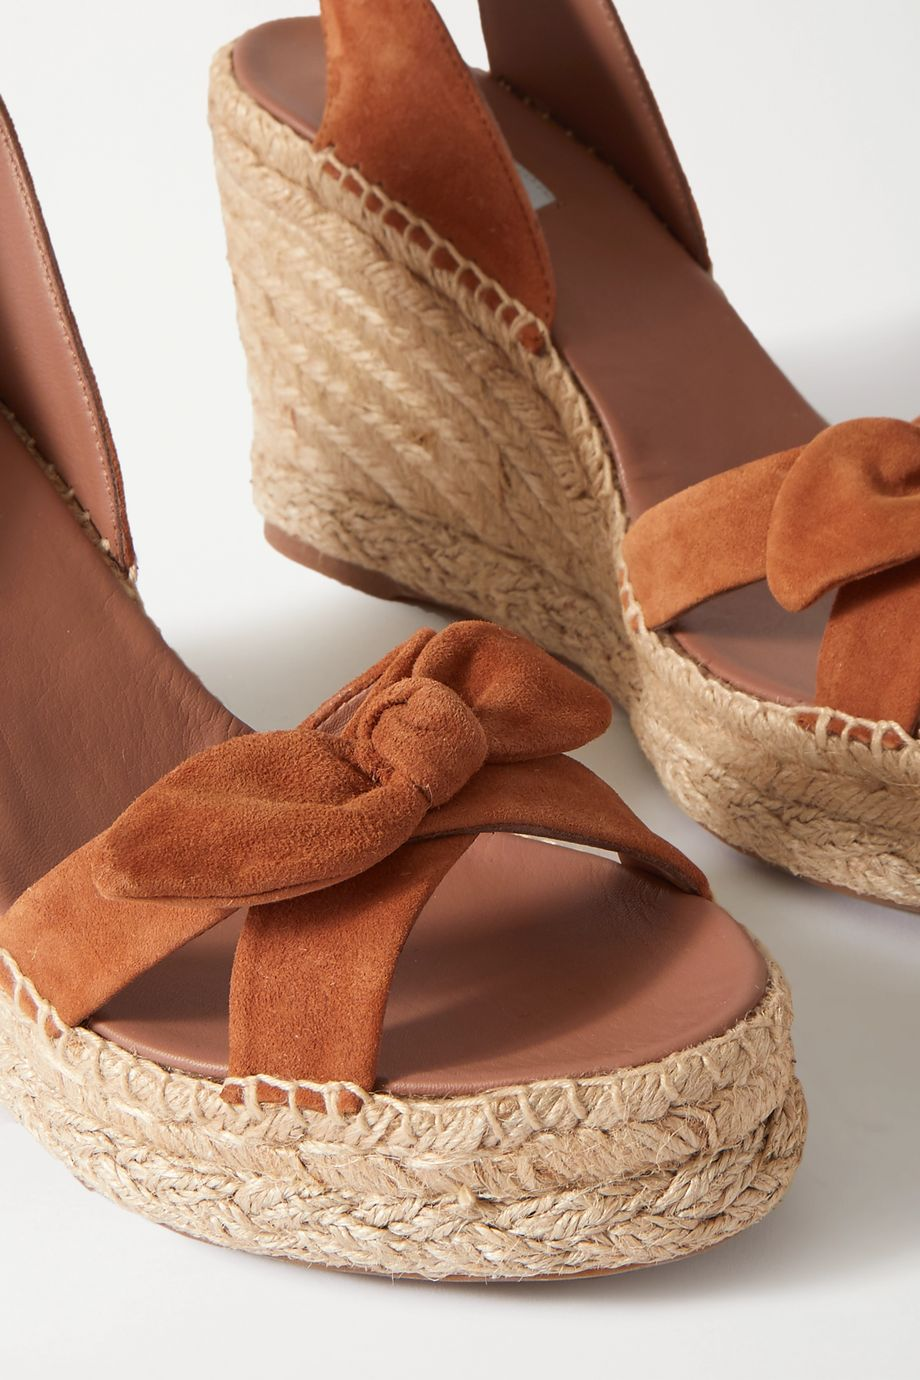 Tabitha Simmons Ross bow-detailed suede espadrille wedge sandals